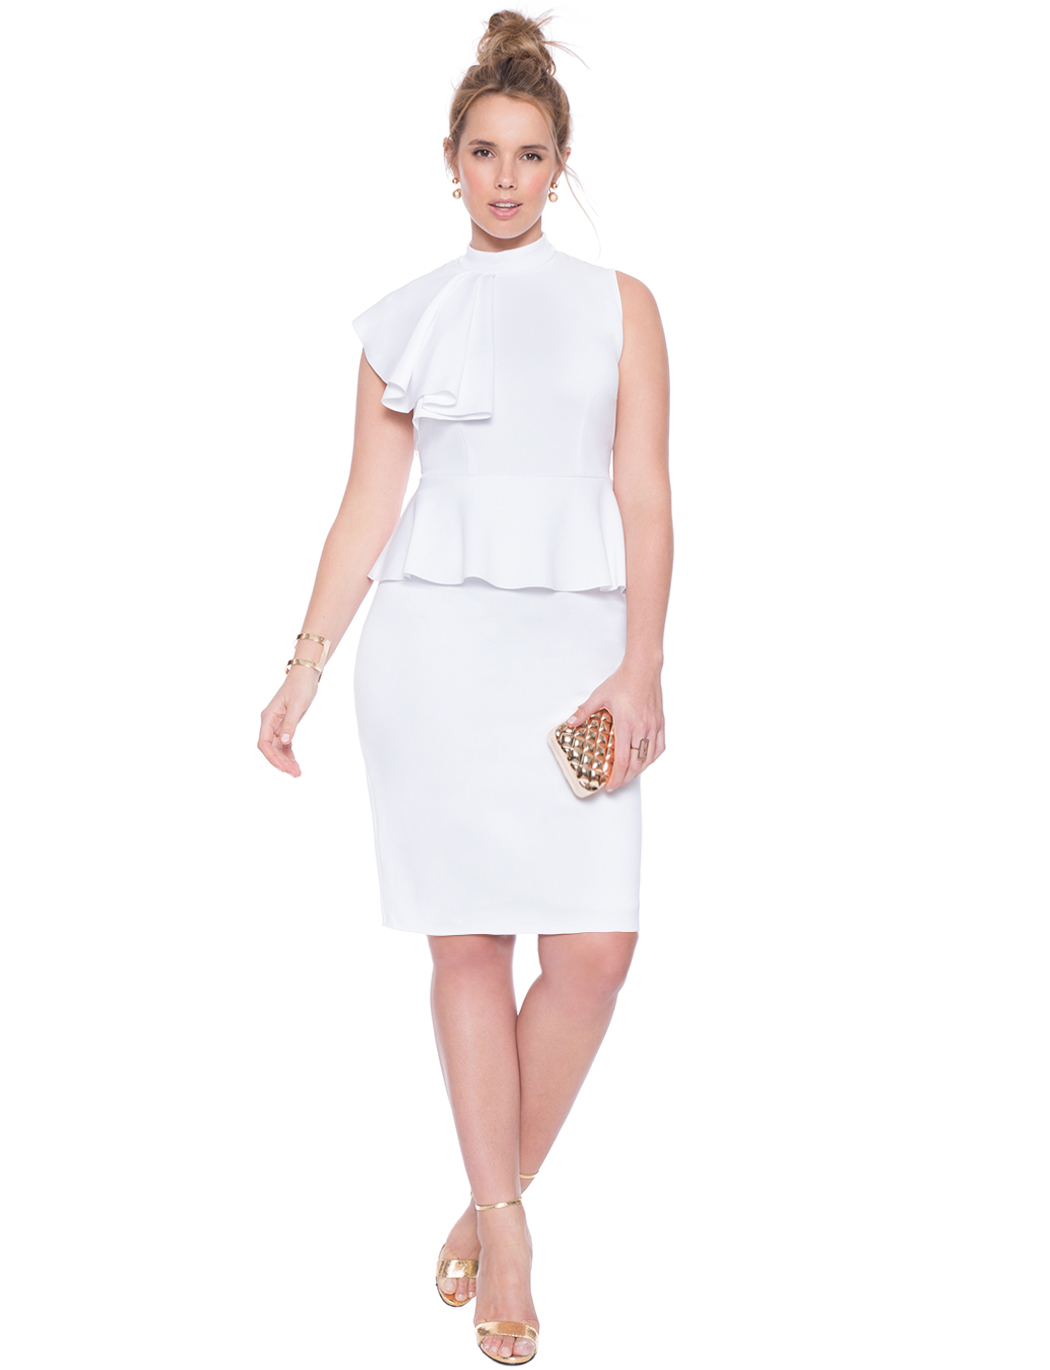 White ruffle dress plus size